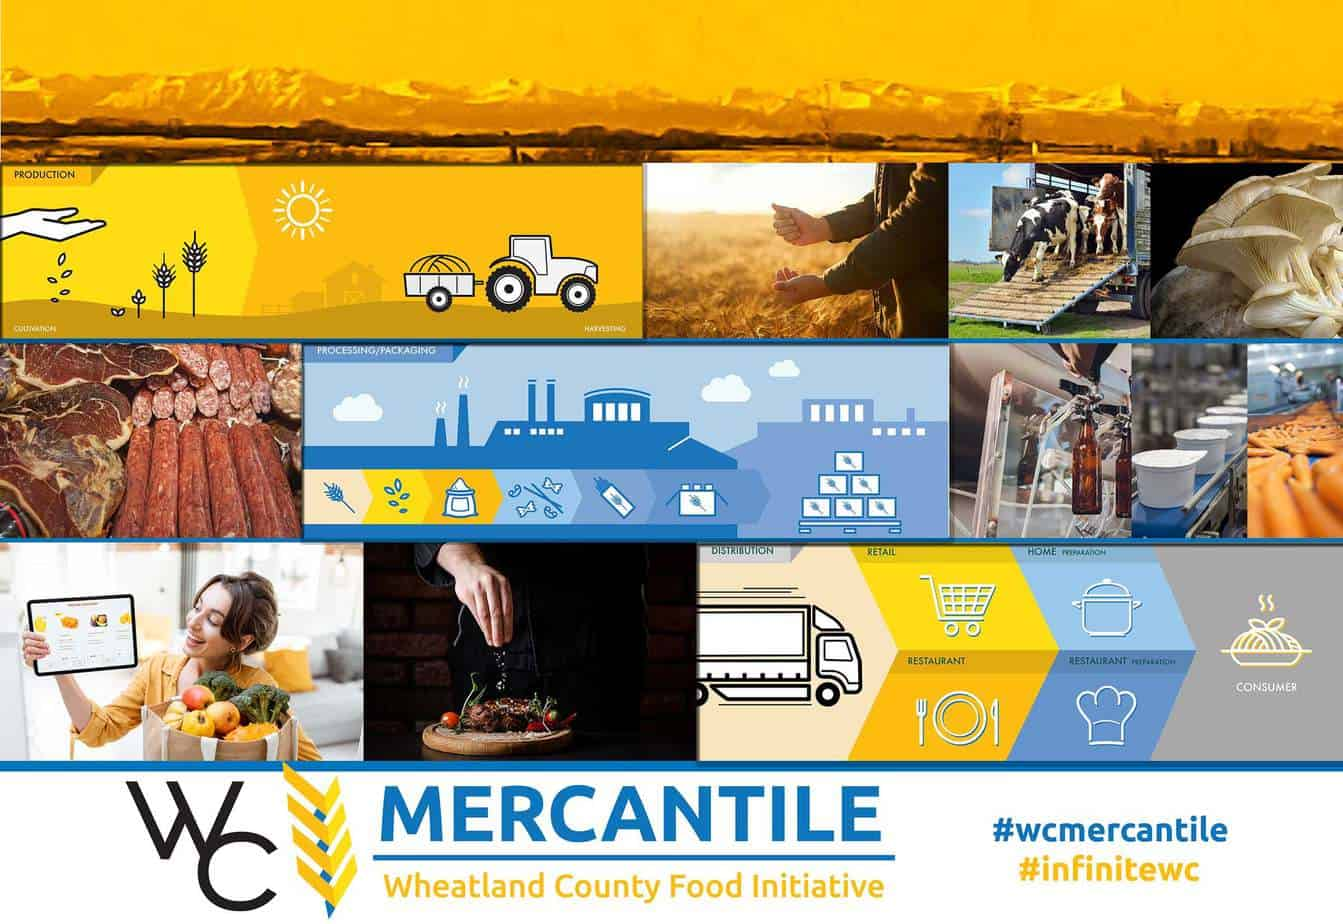 Wheatland County launches mercantile